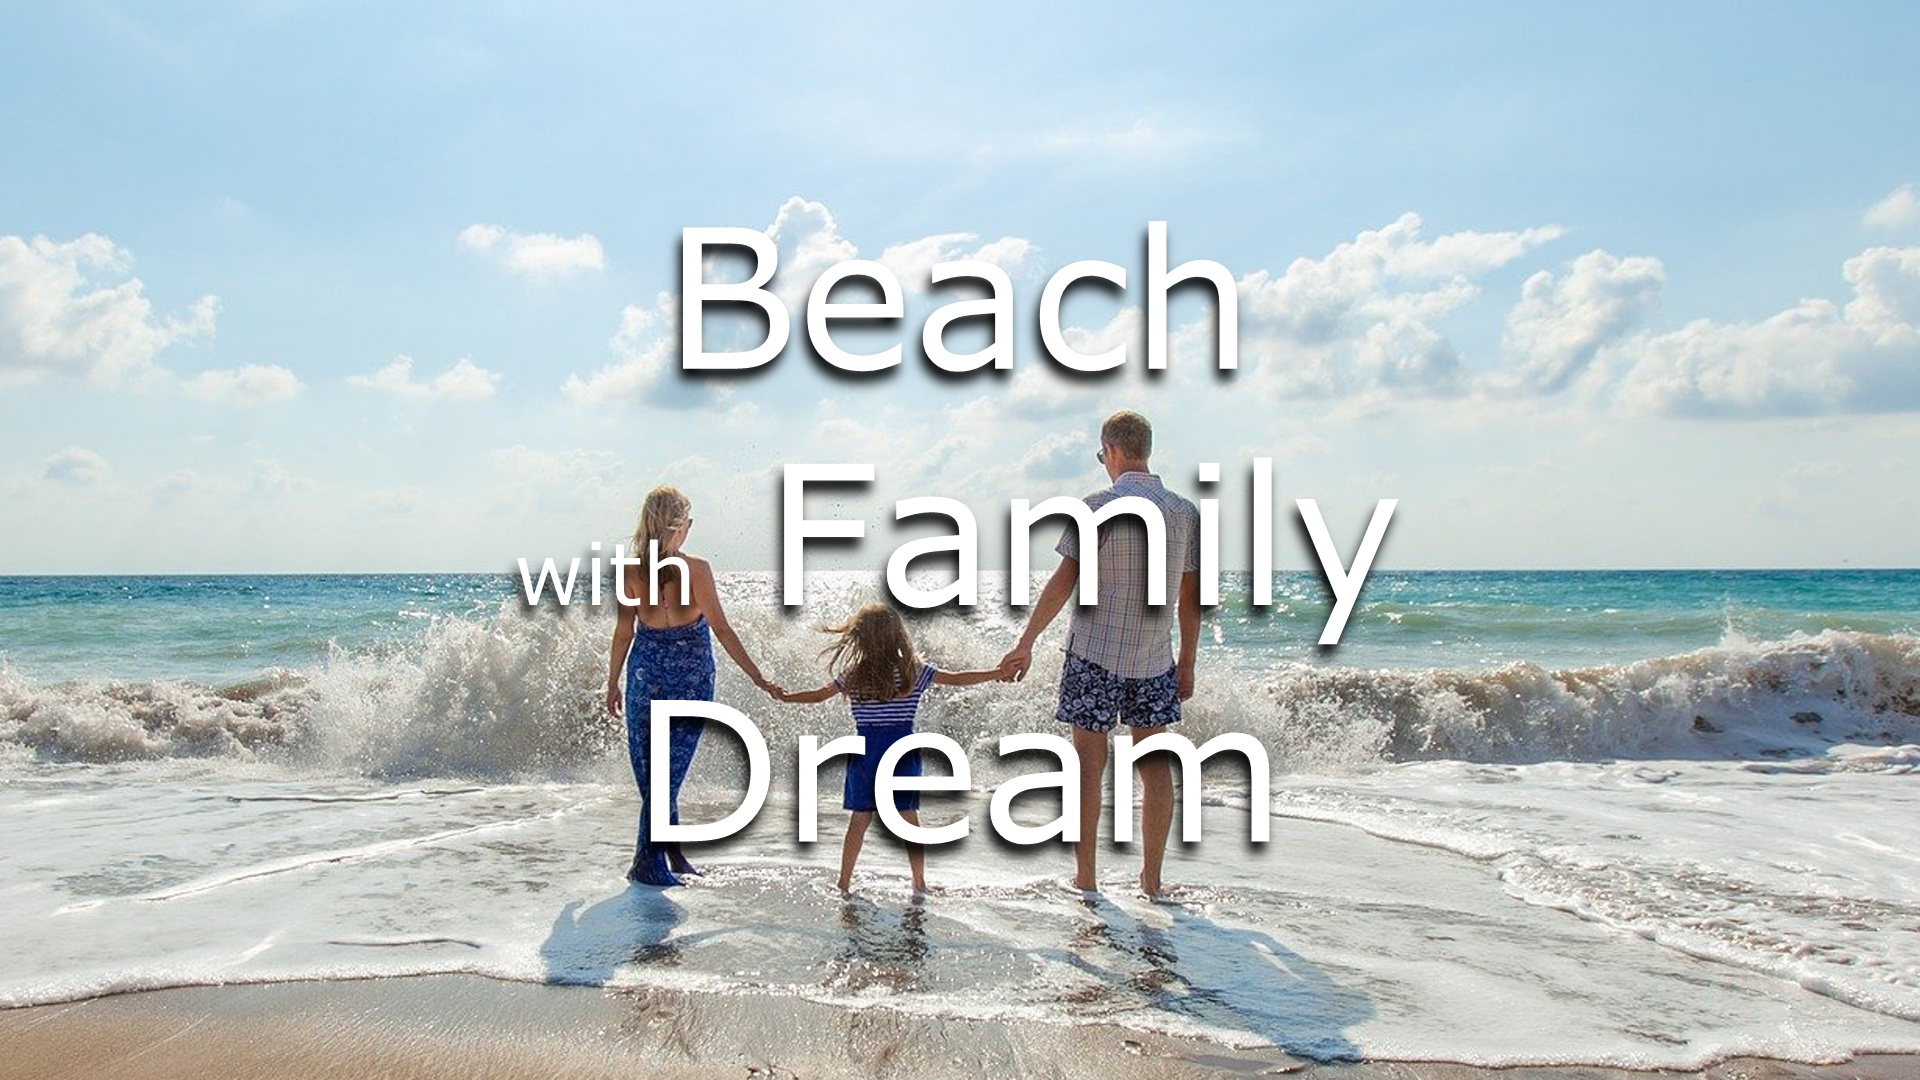 dreaming of beach with family